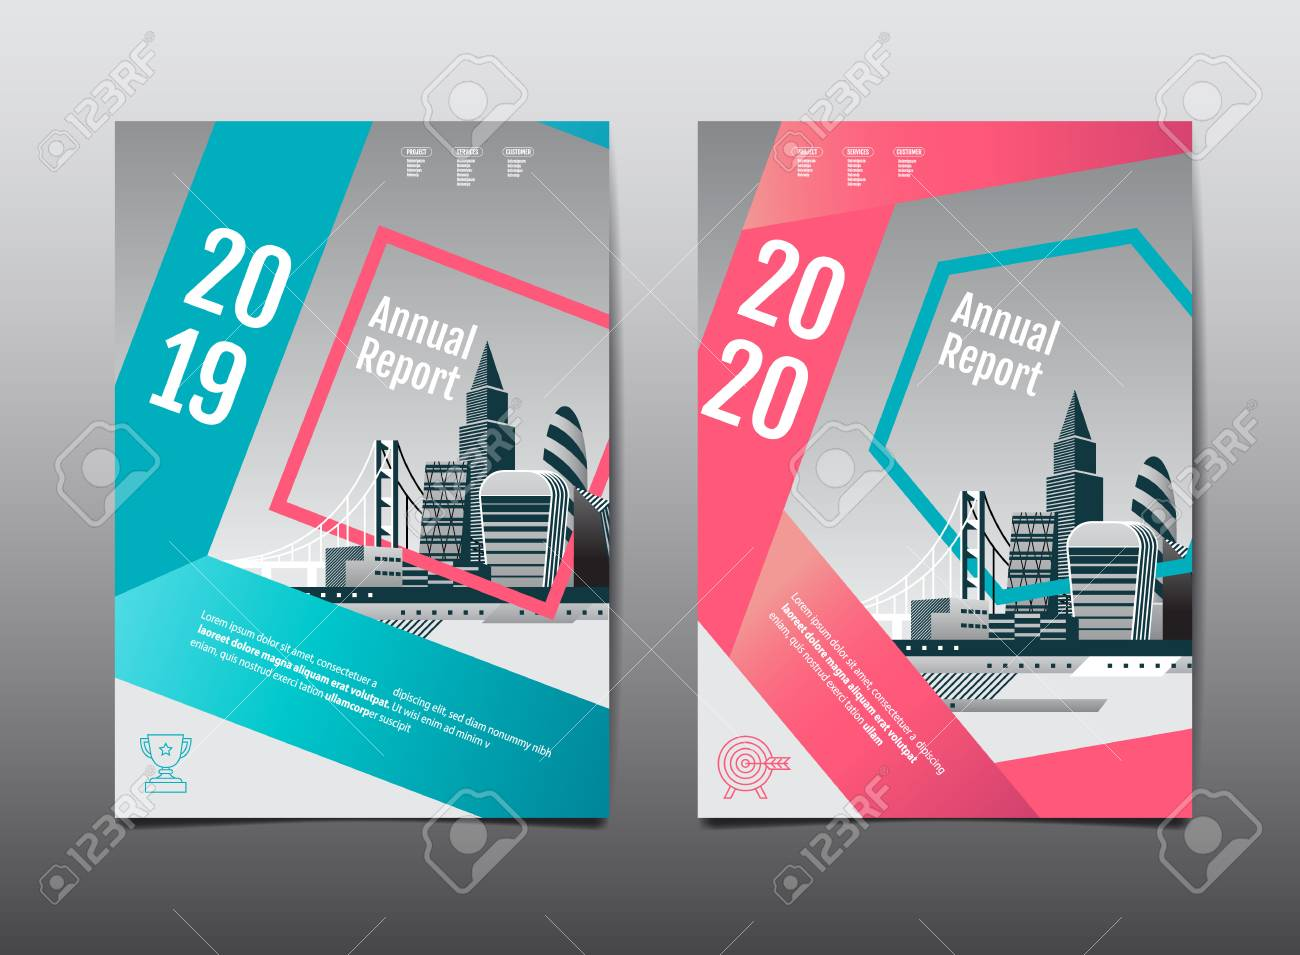 annual report 2019,2020 ,future, business, template layout design,